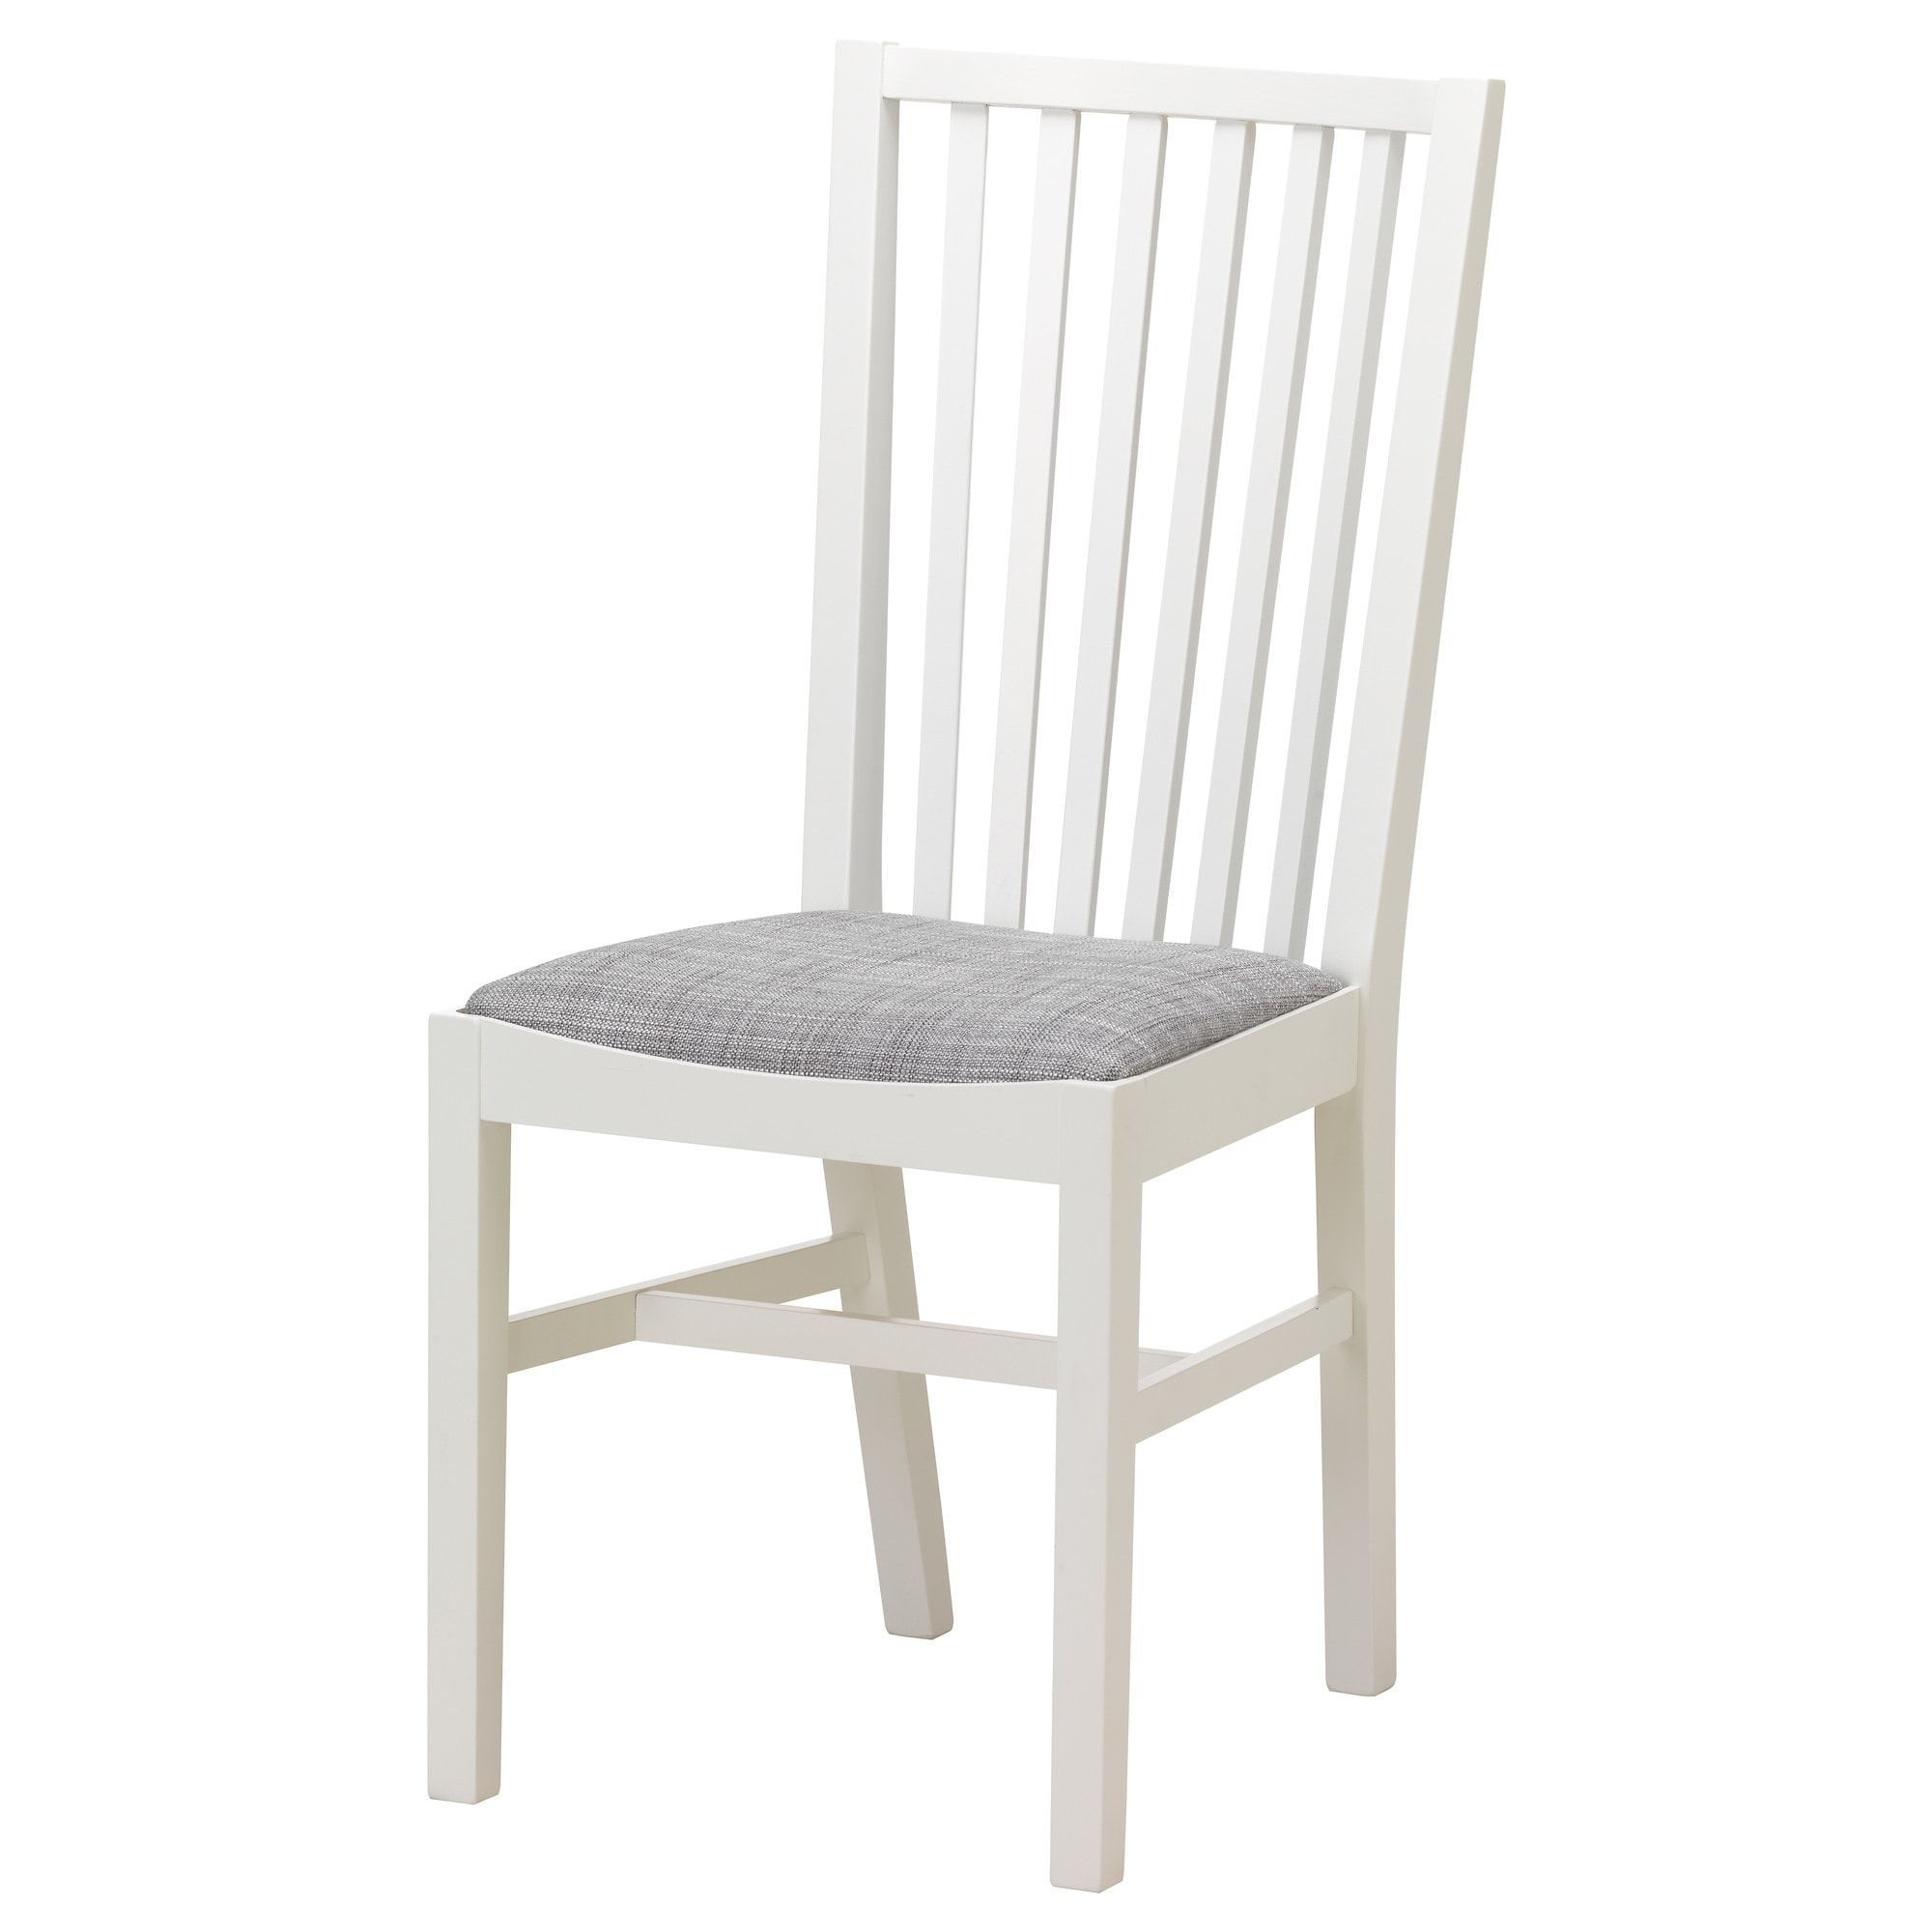 Norrnas Chair White Isunda Gray Ikea Ikea Dining Ikea